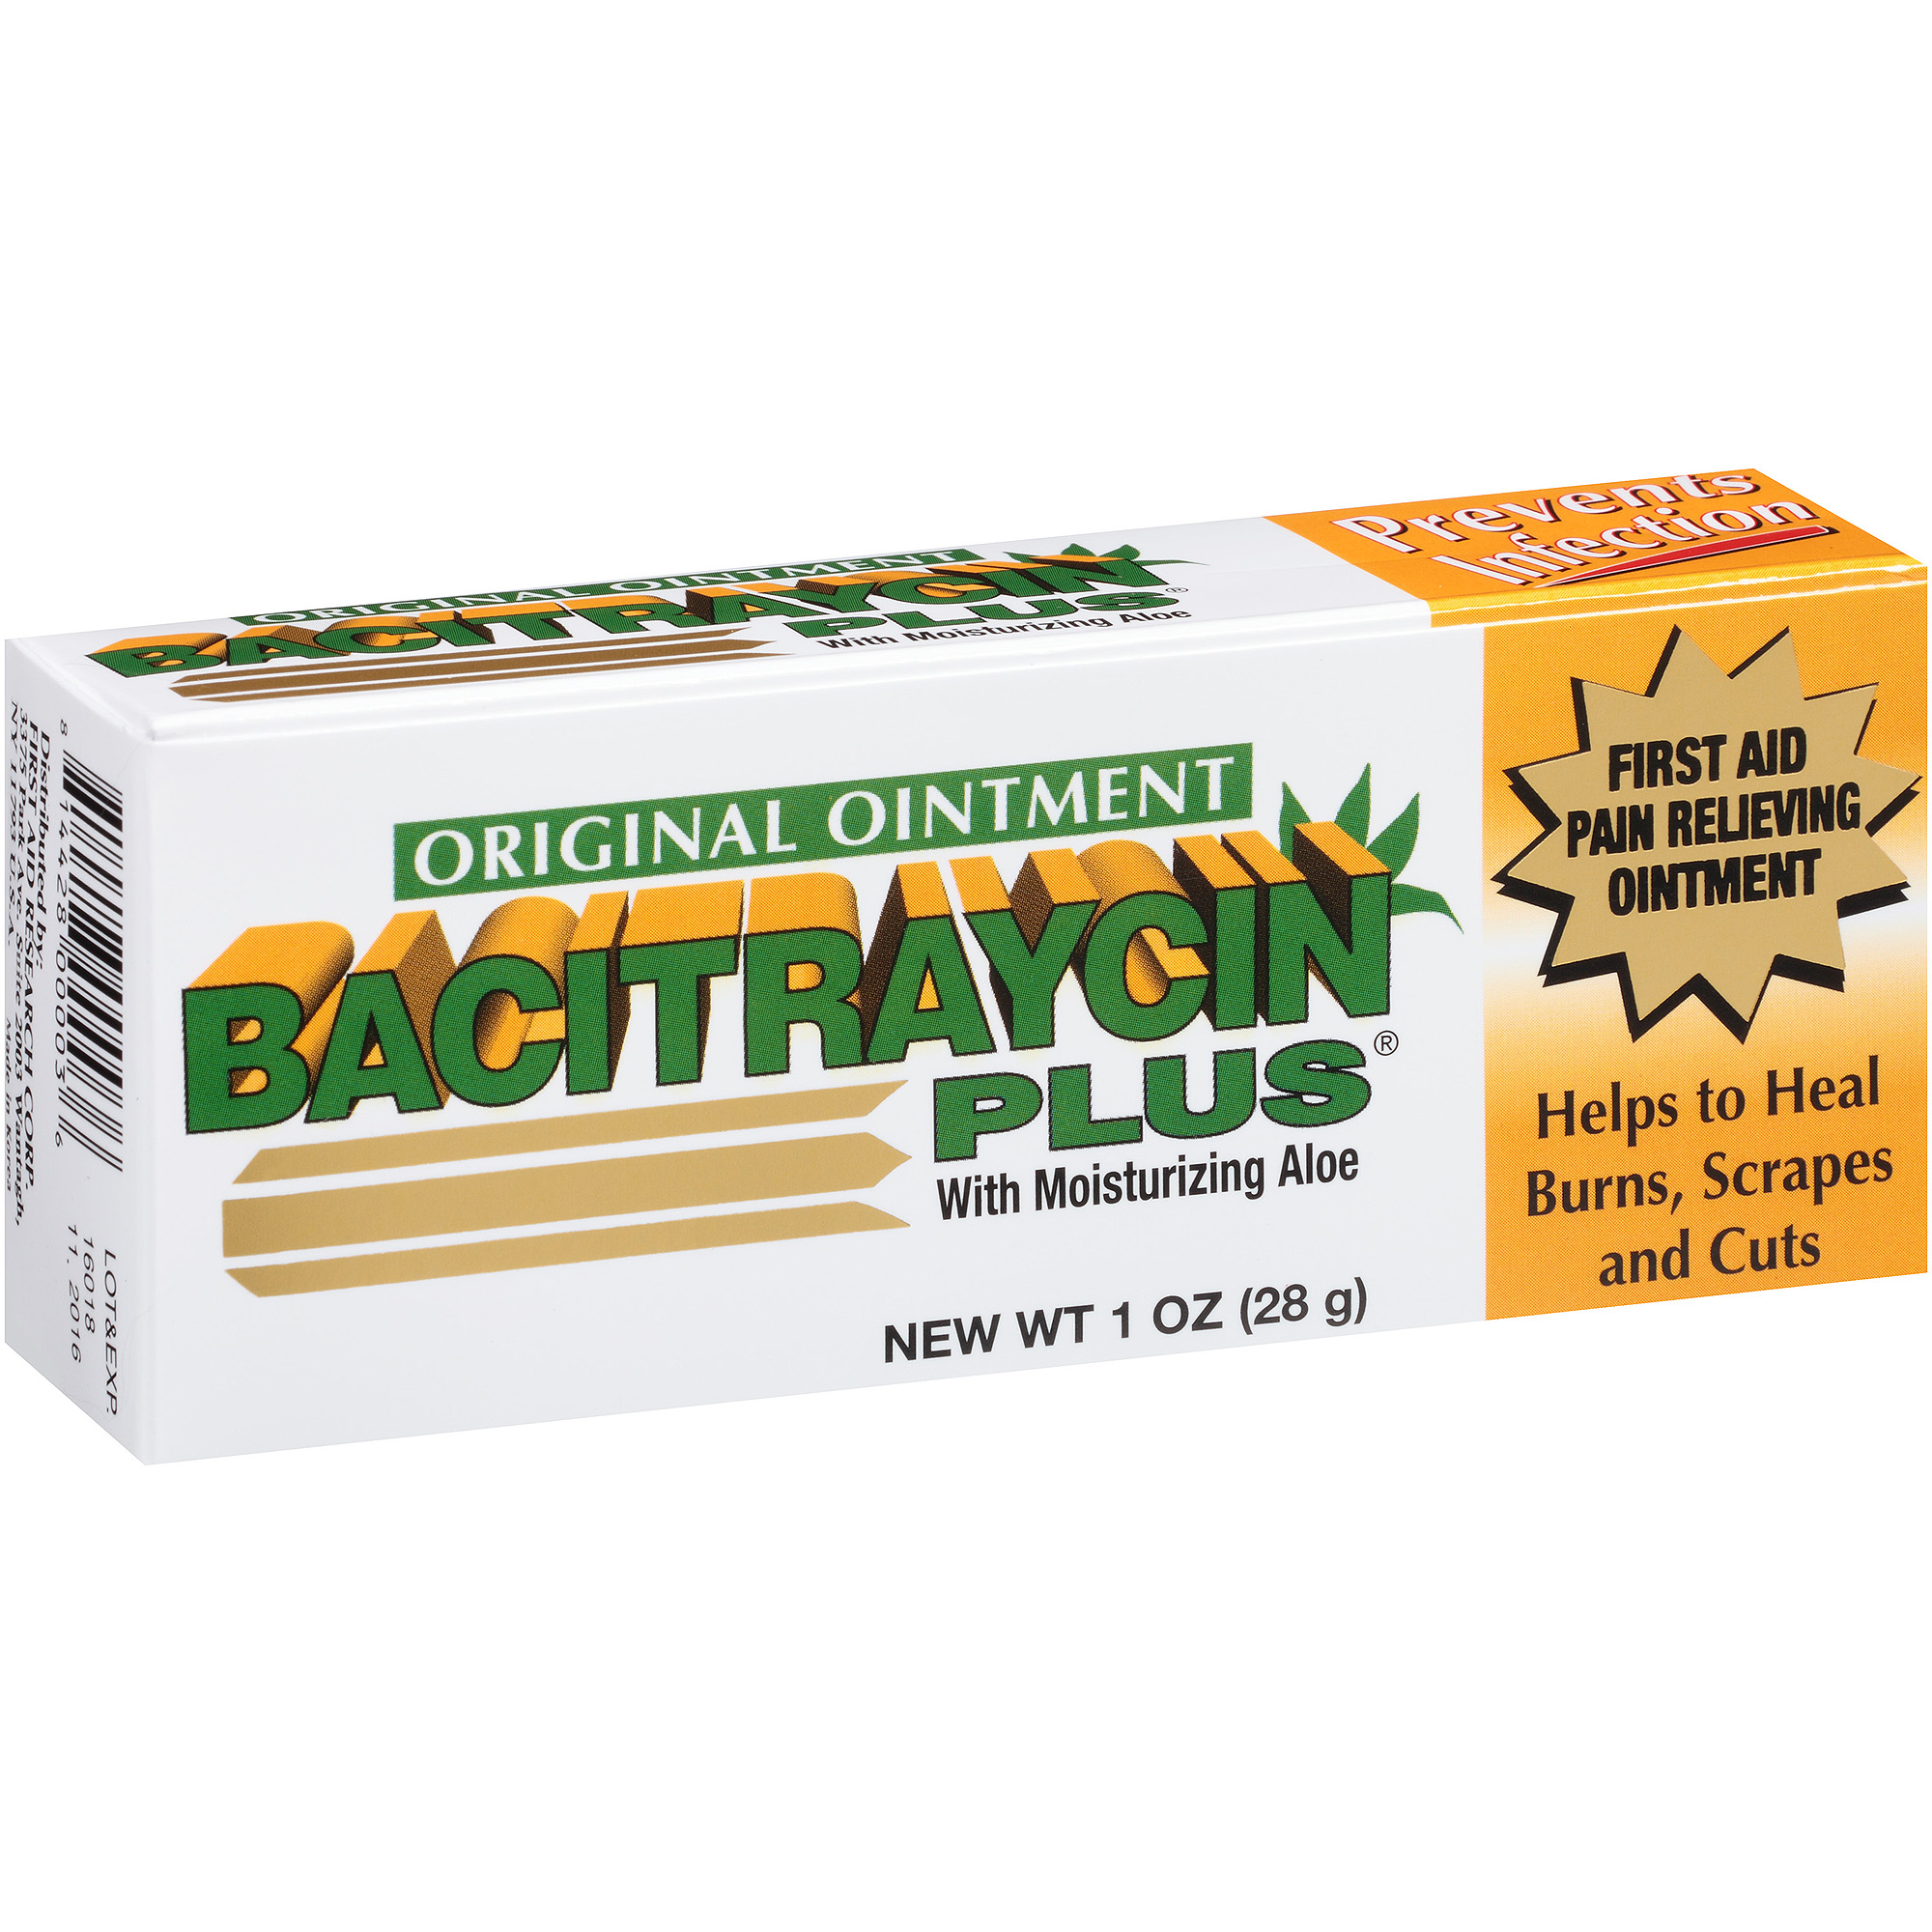 Bacitraycin Plus First Aid Pain Relieving Ointment, 1 oz